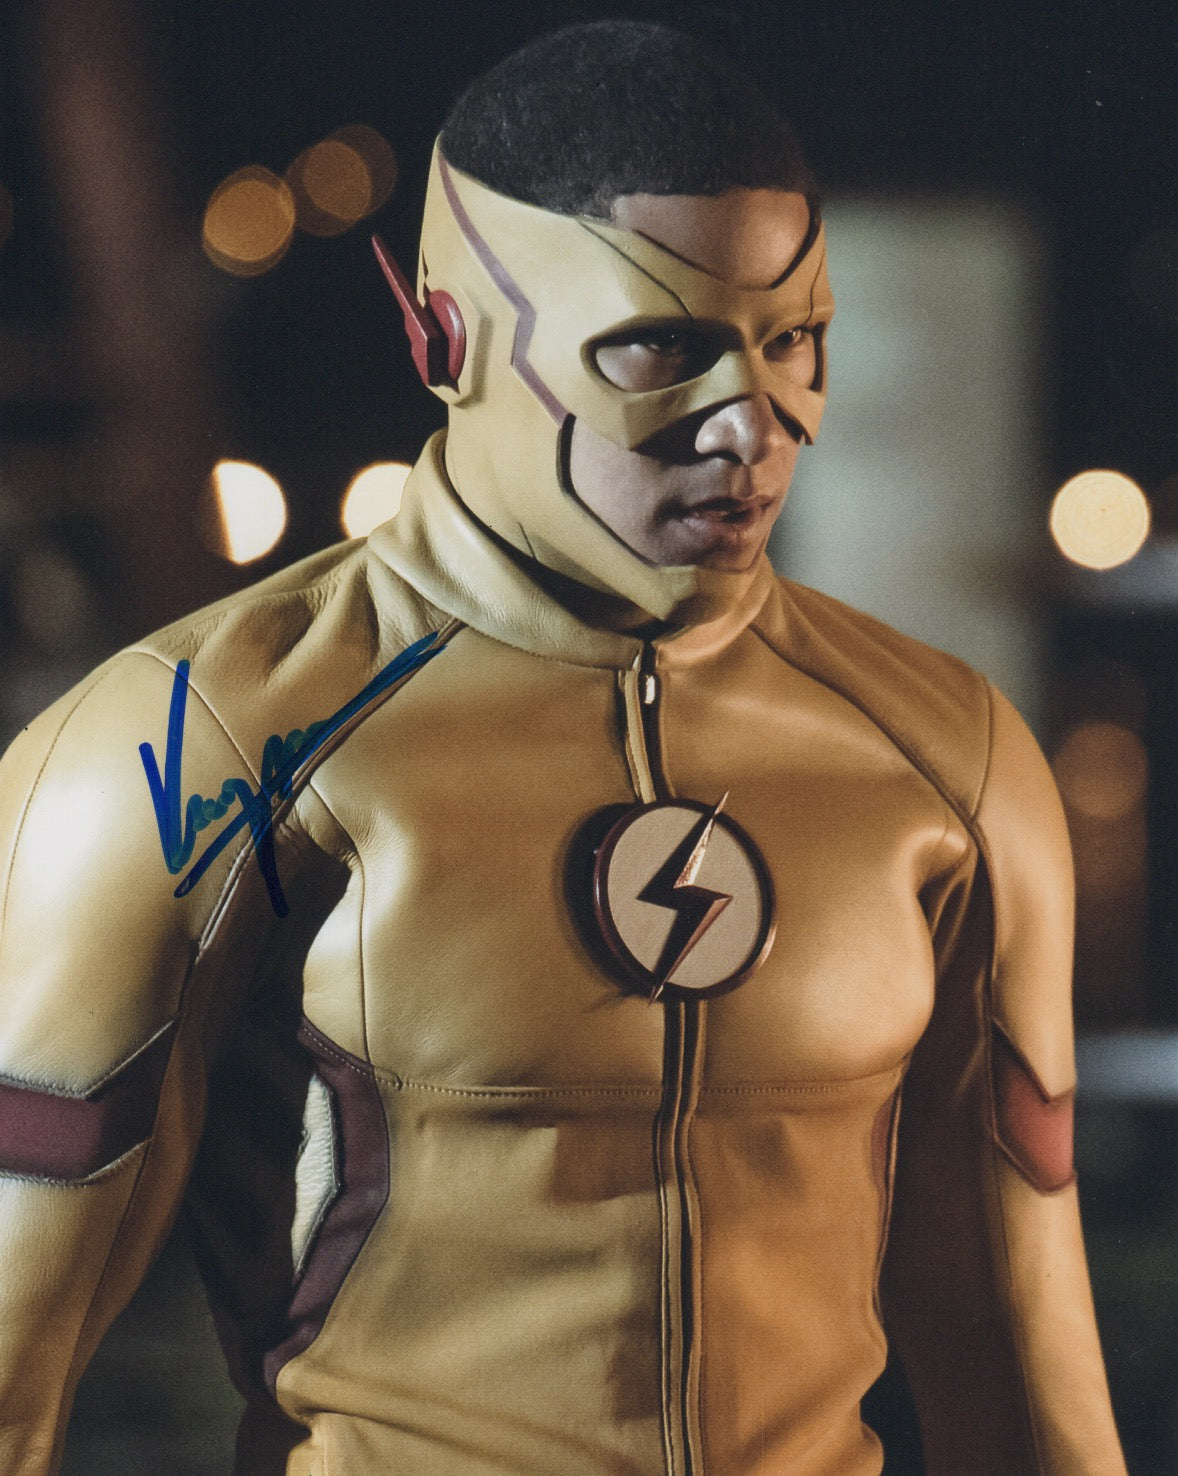 Keiynan Lonsdale Kid Flash Signed Autograph 8x10 Photo #2 - Outlaw Hobbies Authentic Autographs